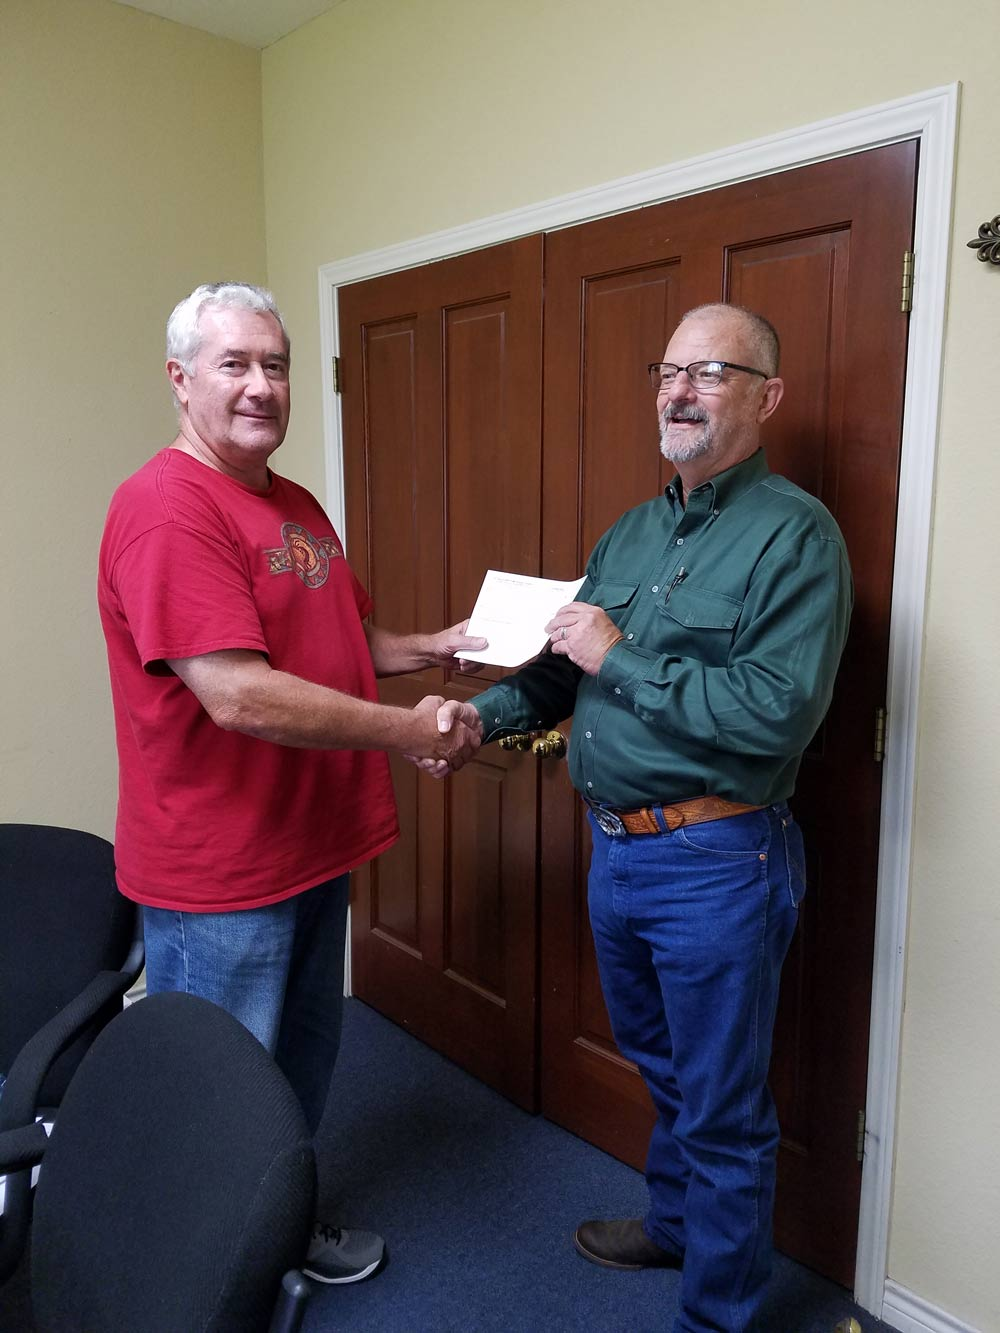 Pictured is Brian Mitchell, Finance Chairperson, handing Pastor Randall Hilburn a check for immediate transmission to the conference treasurer.